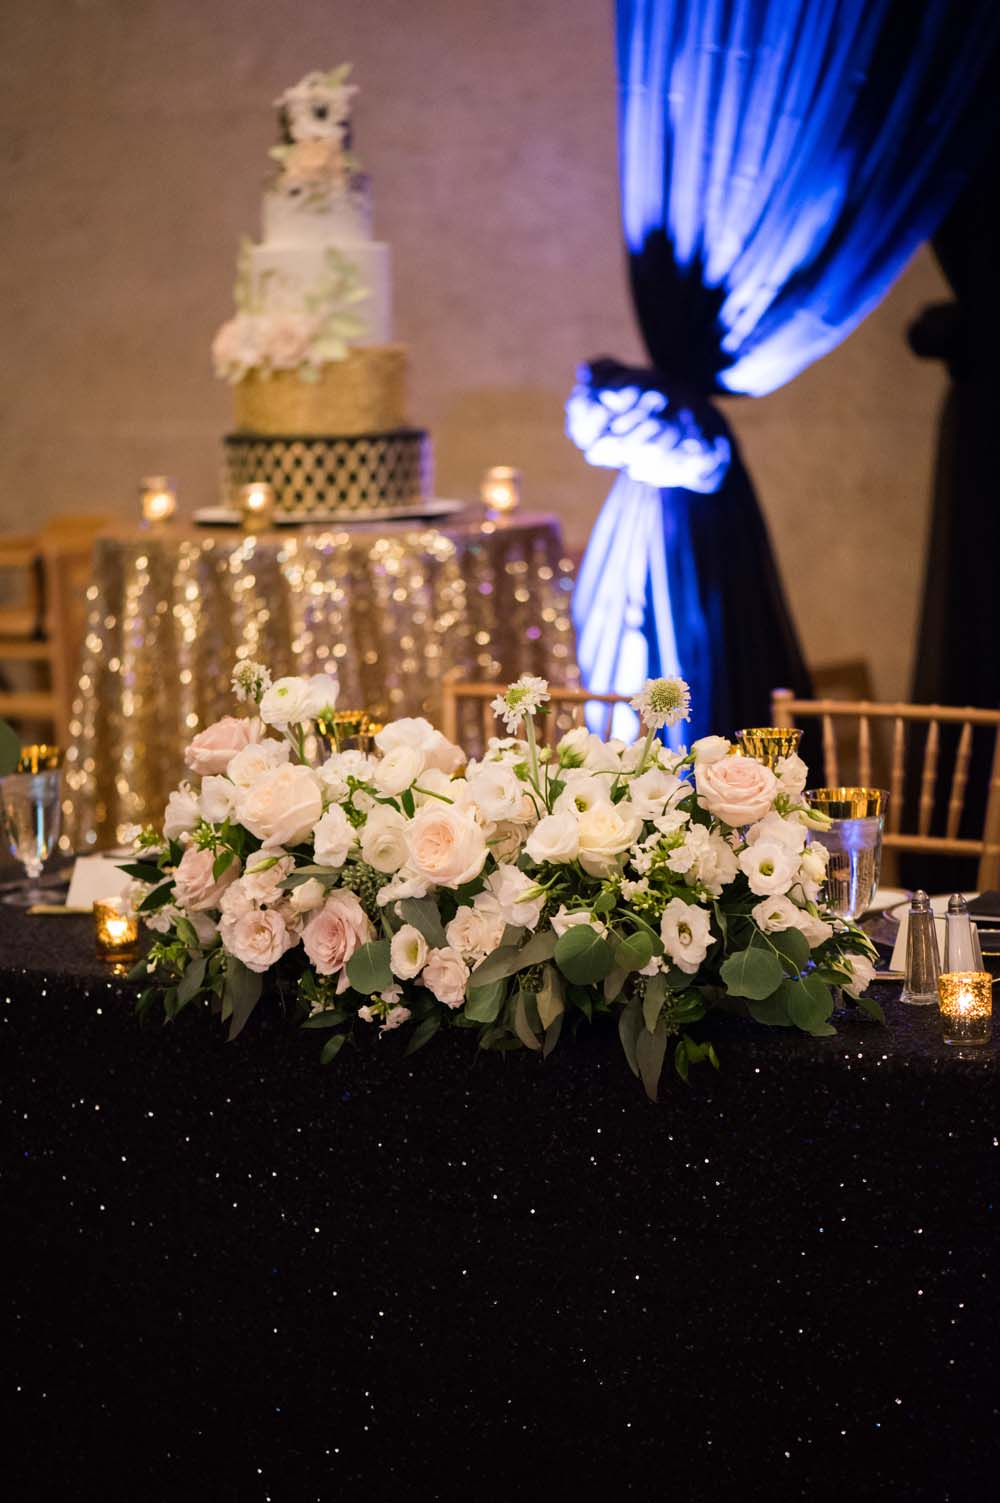 A Classic Vintage inspired Wedding at the One King West in Toronto - Table Floral Arrangement